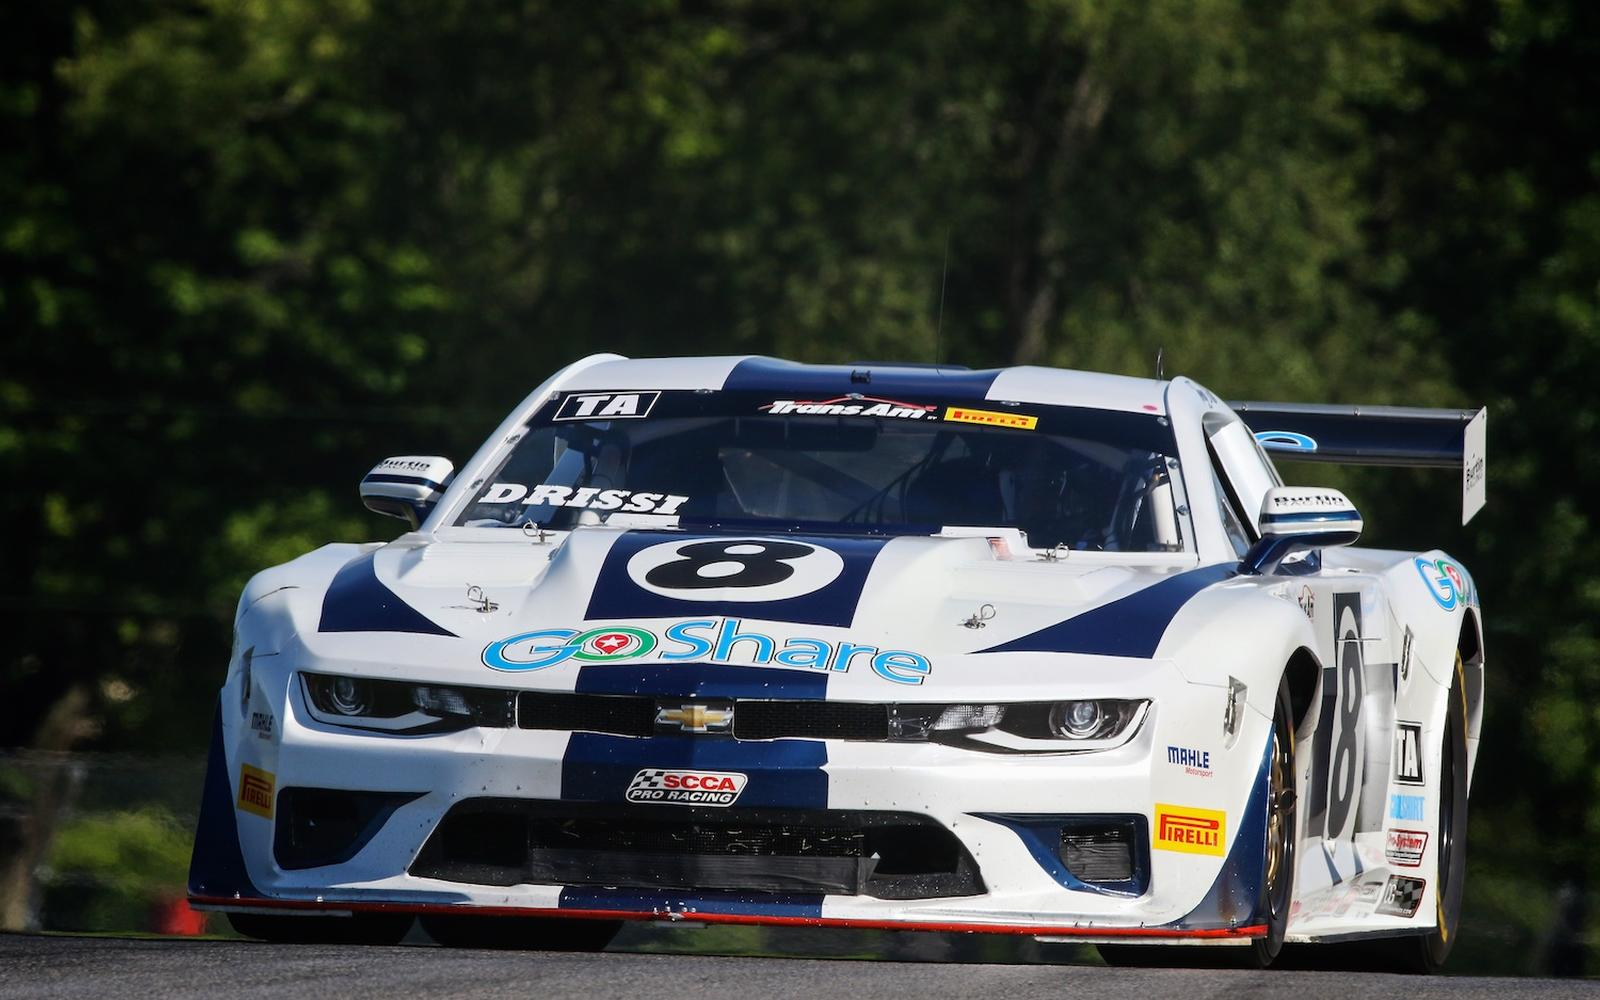 Tomy Drissi Back on Track at Mid-Ohio for the Pirelli Trans Am First Energy 100